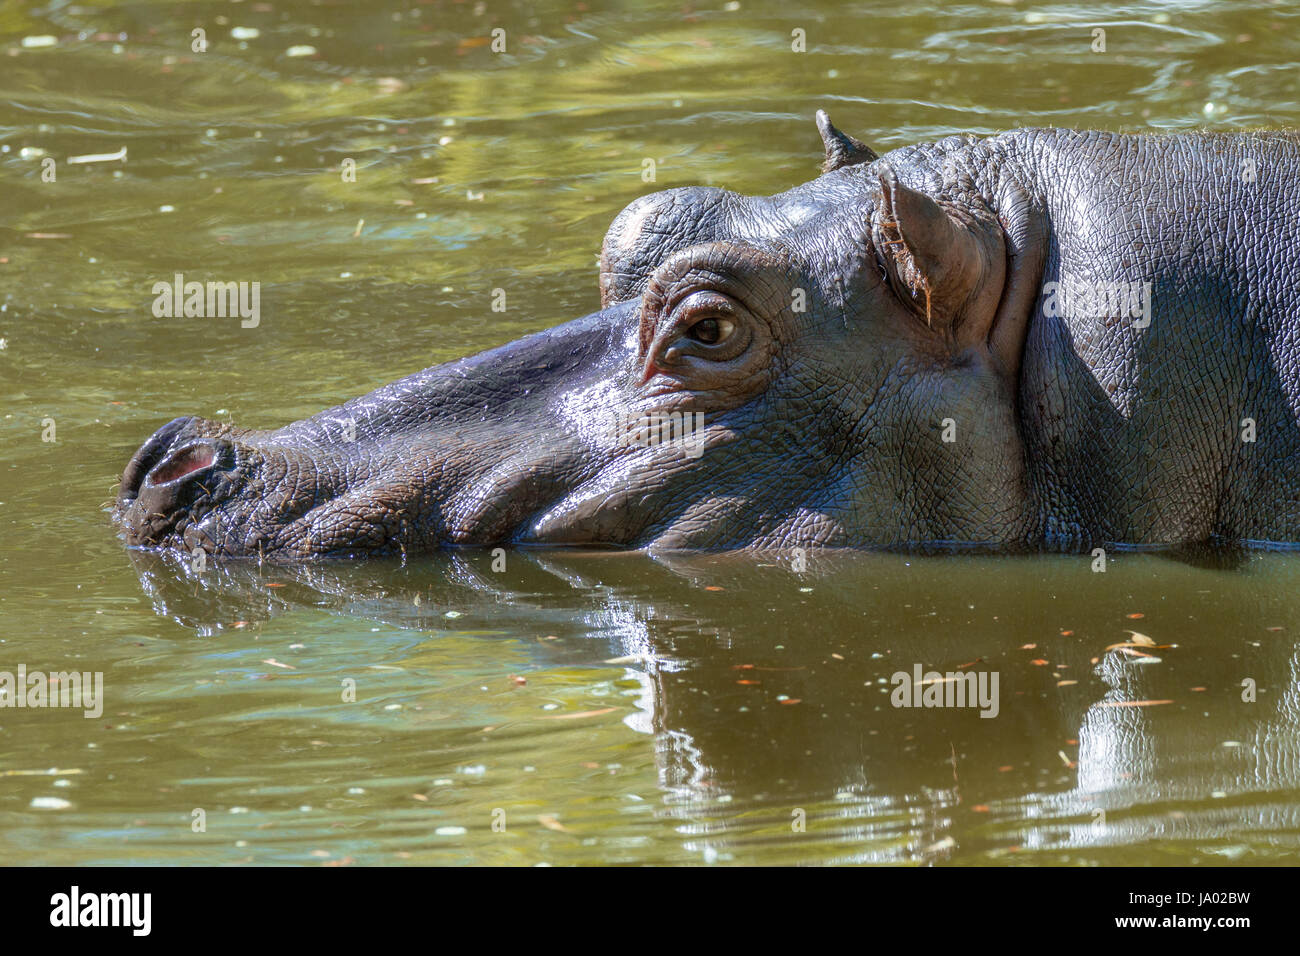 Image of a large mammal of a wild animal, hippopotamus in water - Stock Image